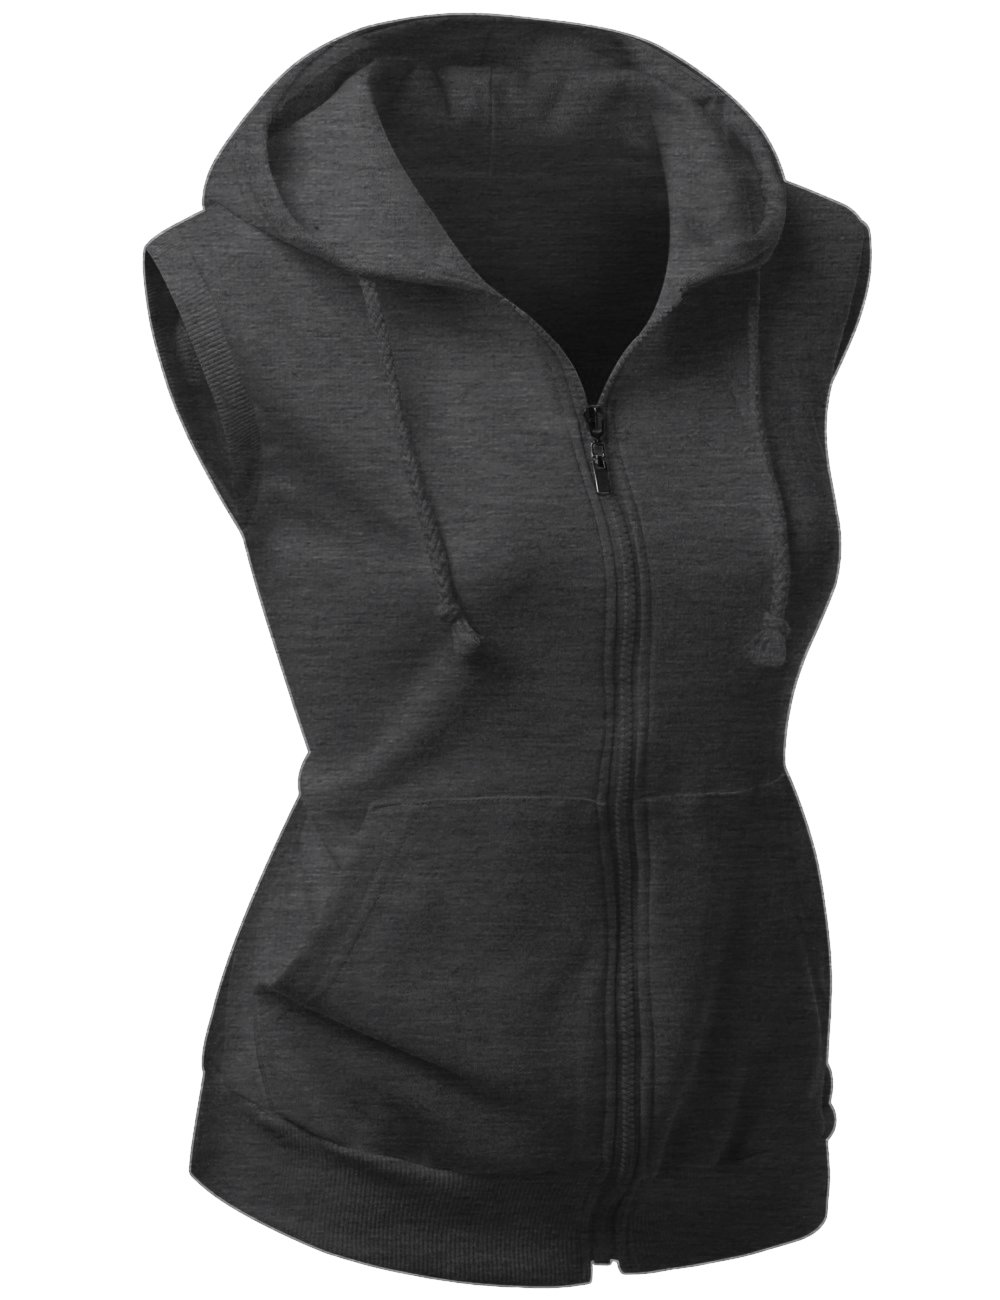 Basic Solid Cotton Based Zipper Vest Hoodie Charcoal Size XL